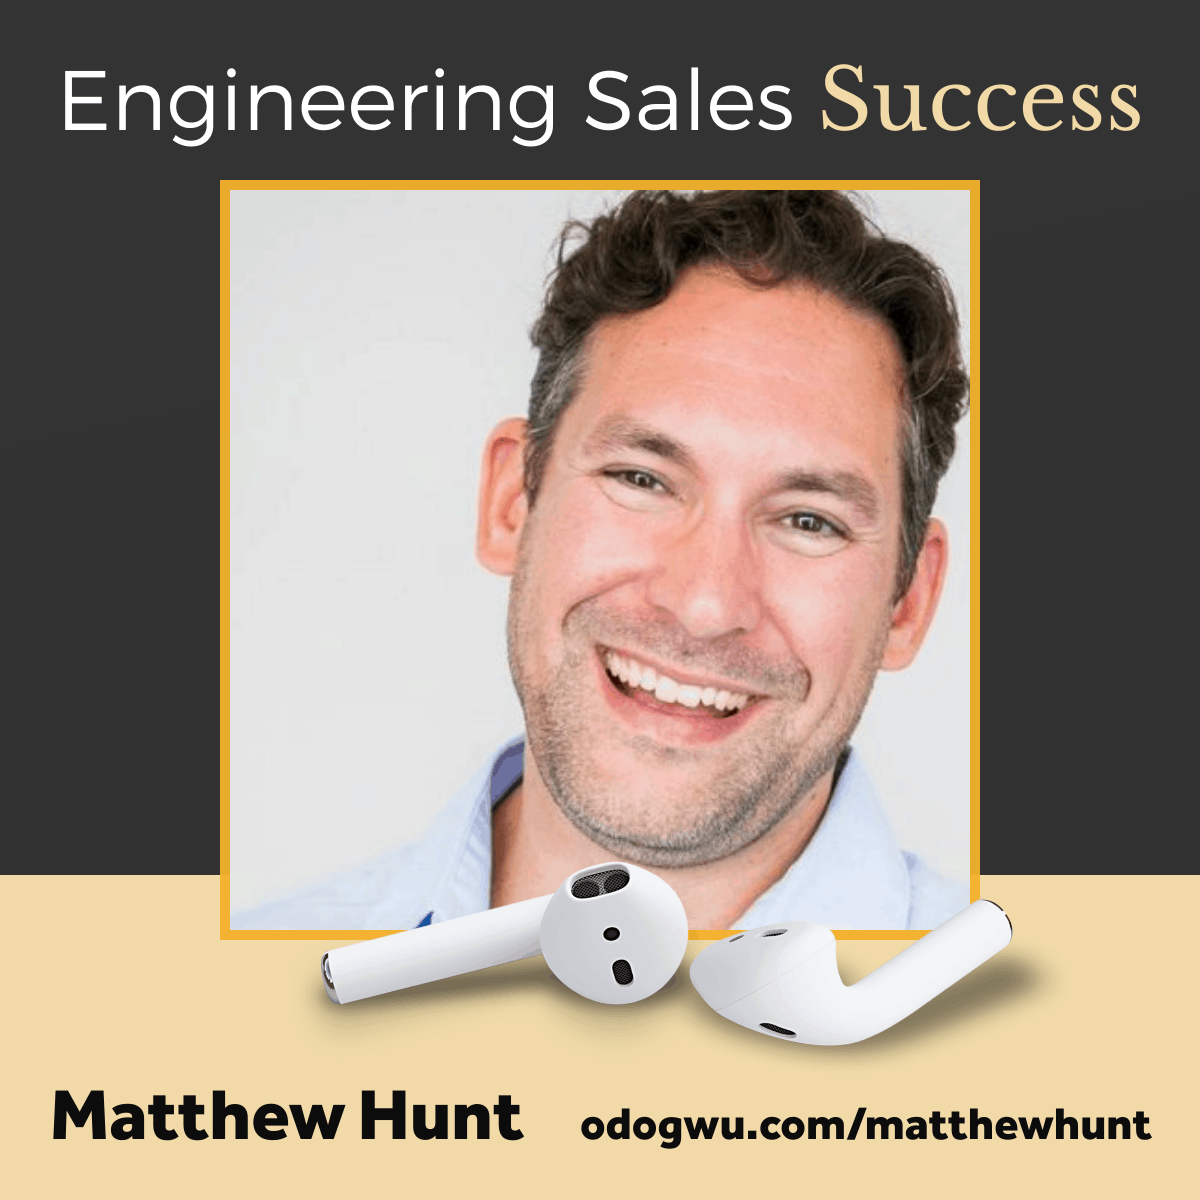 Engineering Sales Success In Challenging Times With Matthew Hunt